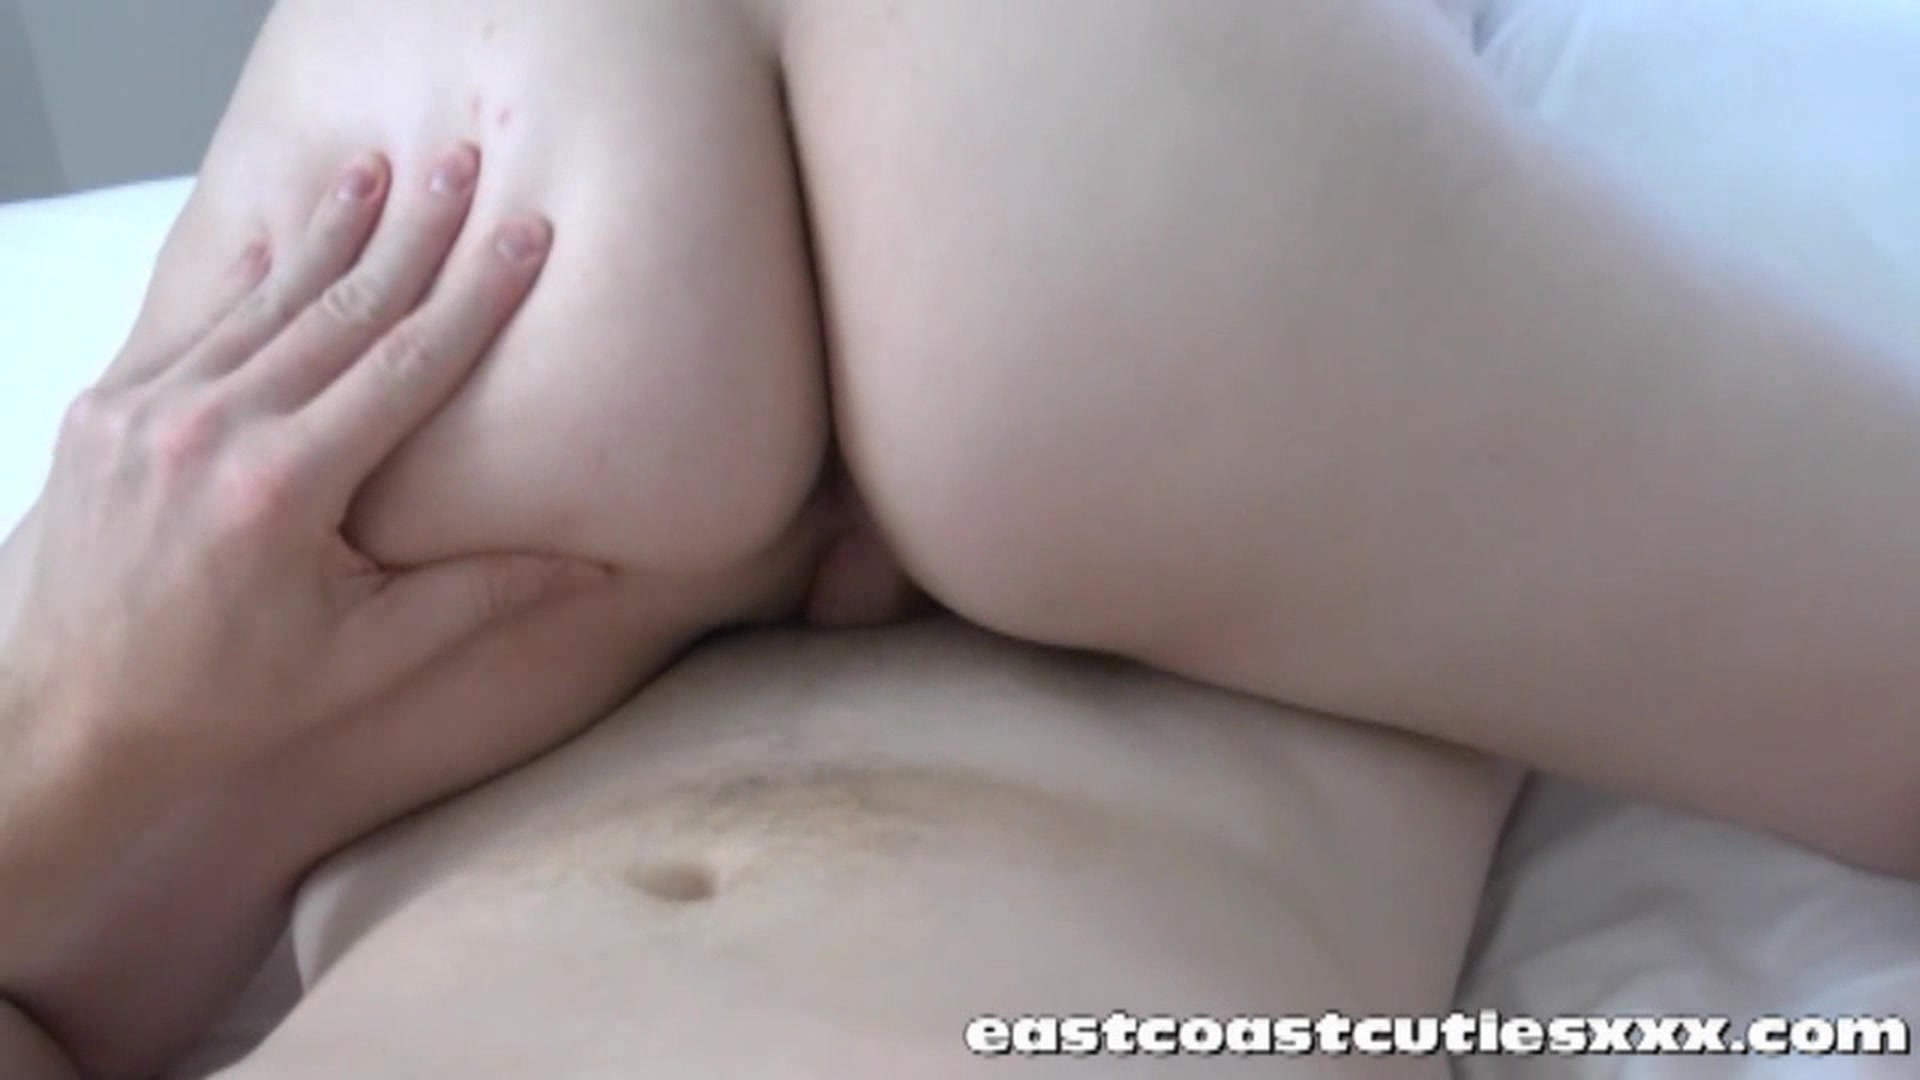 Animal Creampie Porn dani my first porn so creampie me streaming video on demand